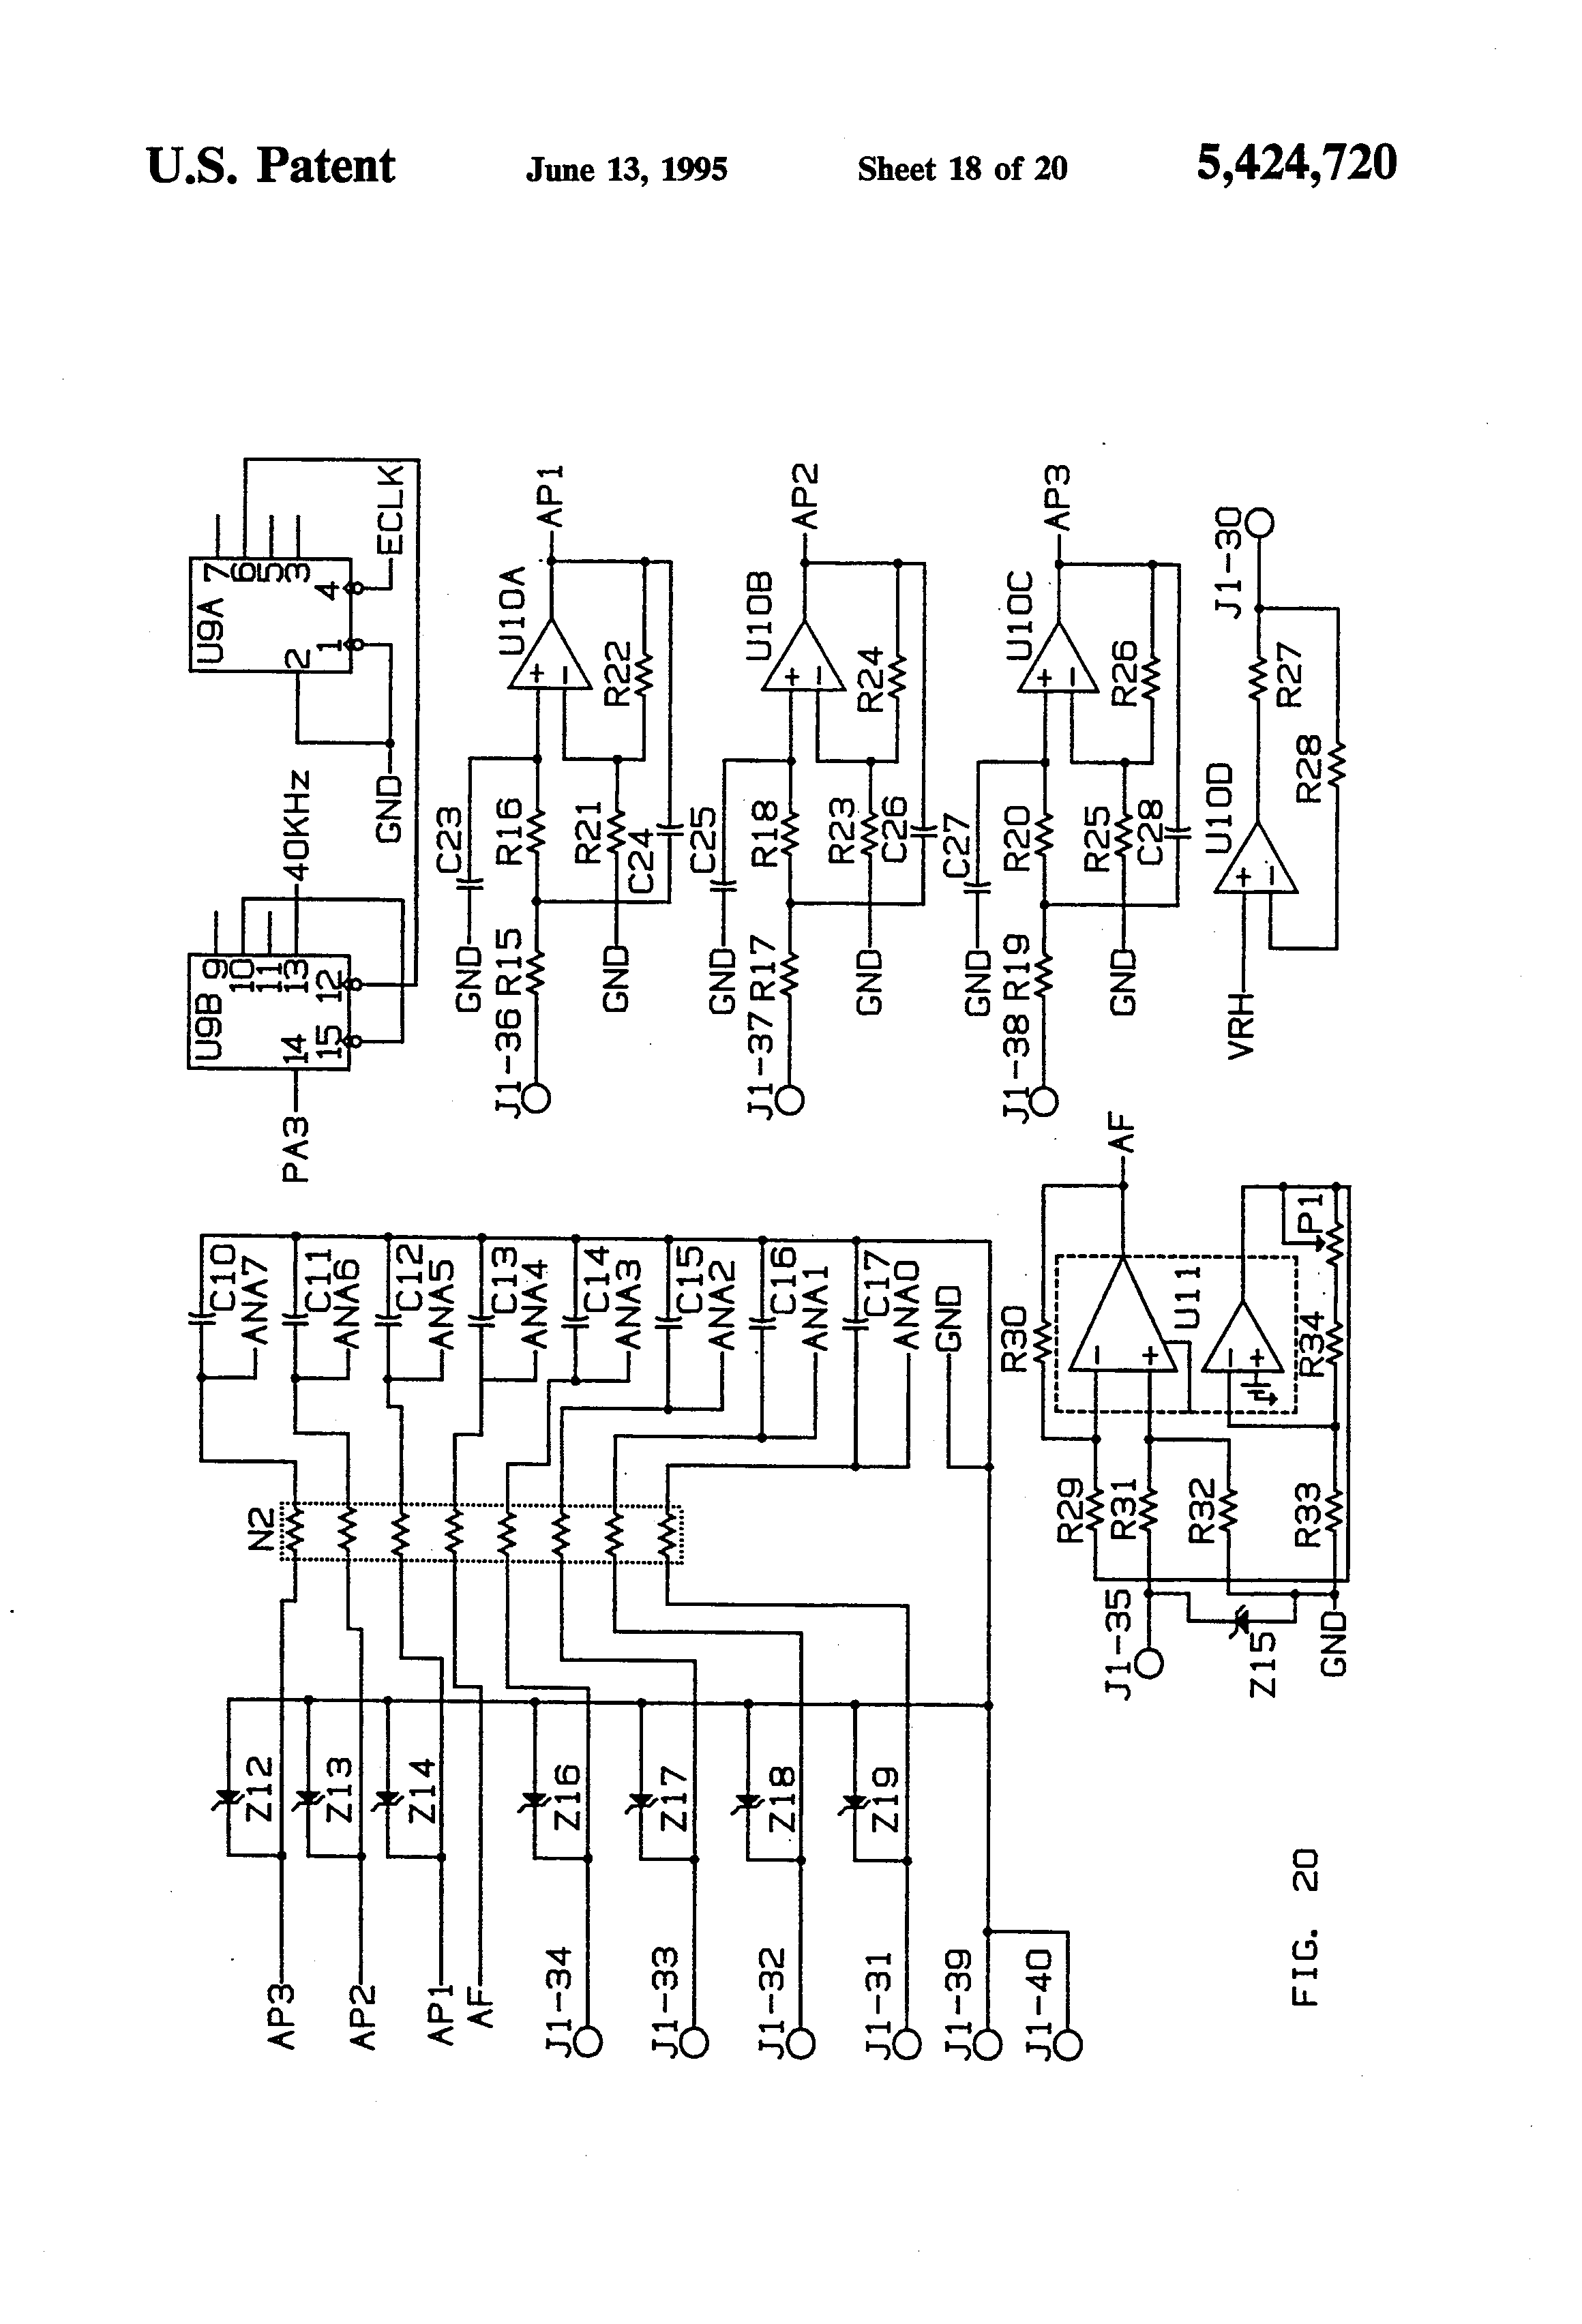 1996 International 444e Engine Diagram 1996 Free Engine